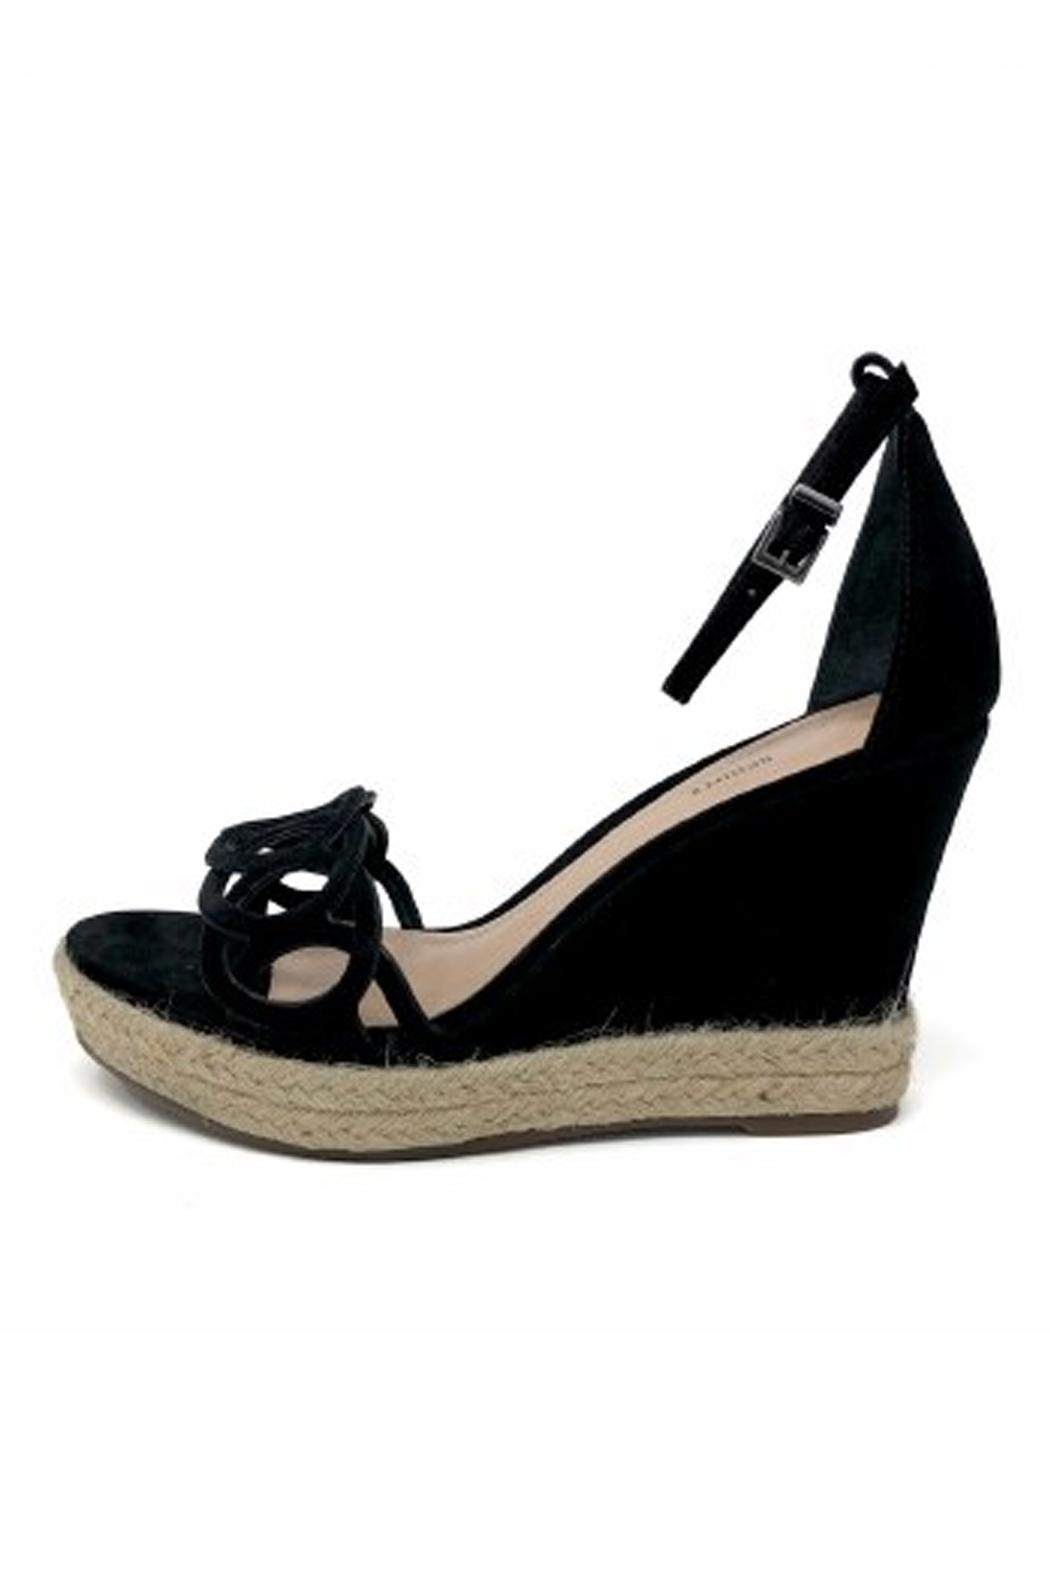 Schutz Black Leather Wedges - Front Cropped Image